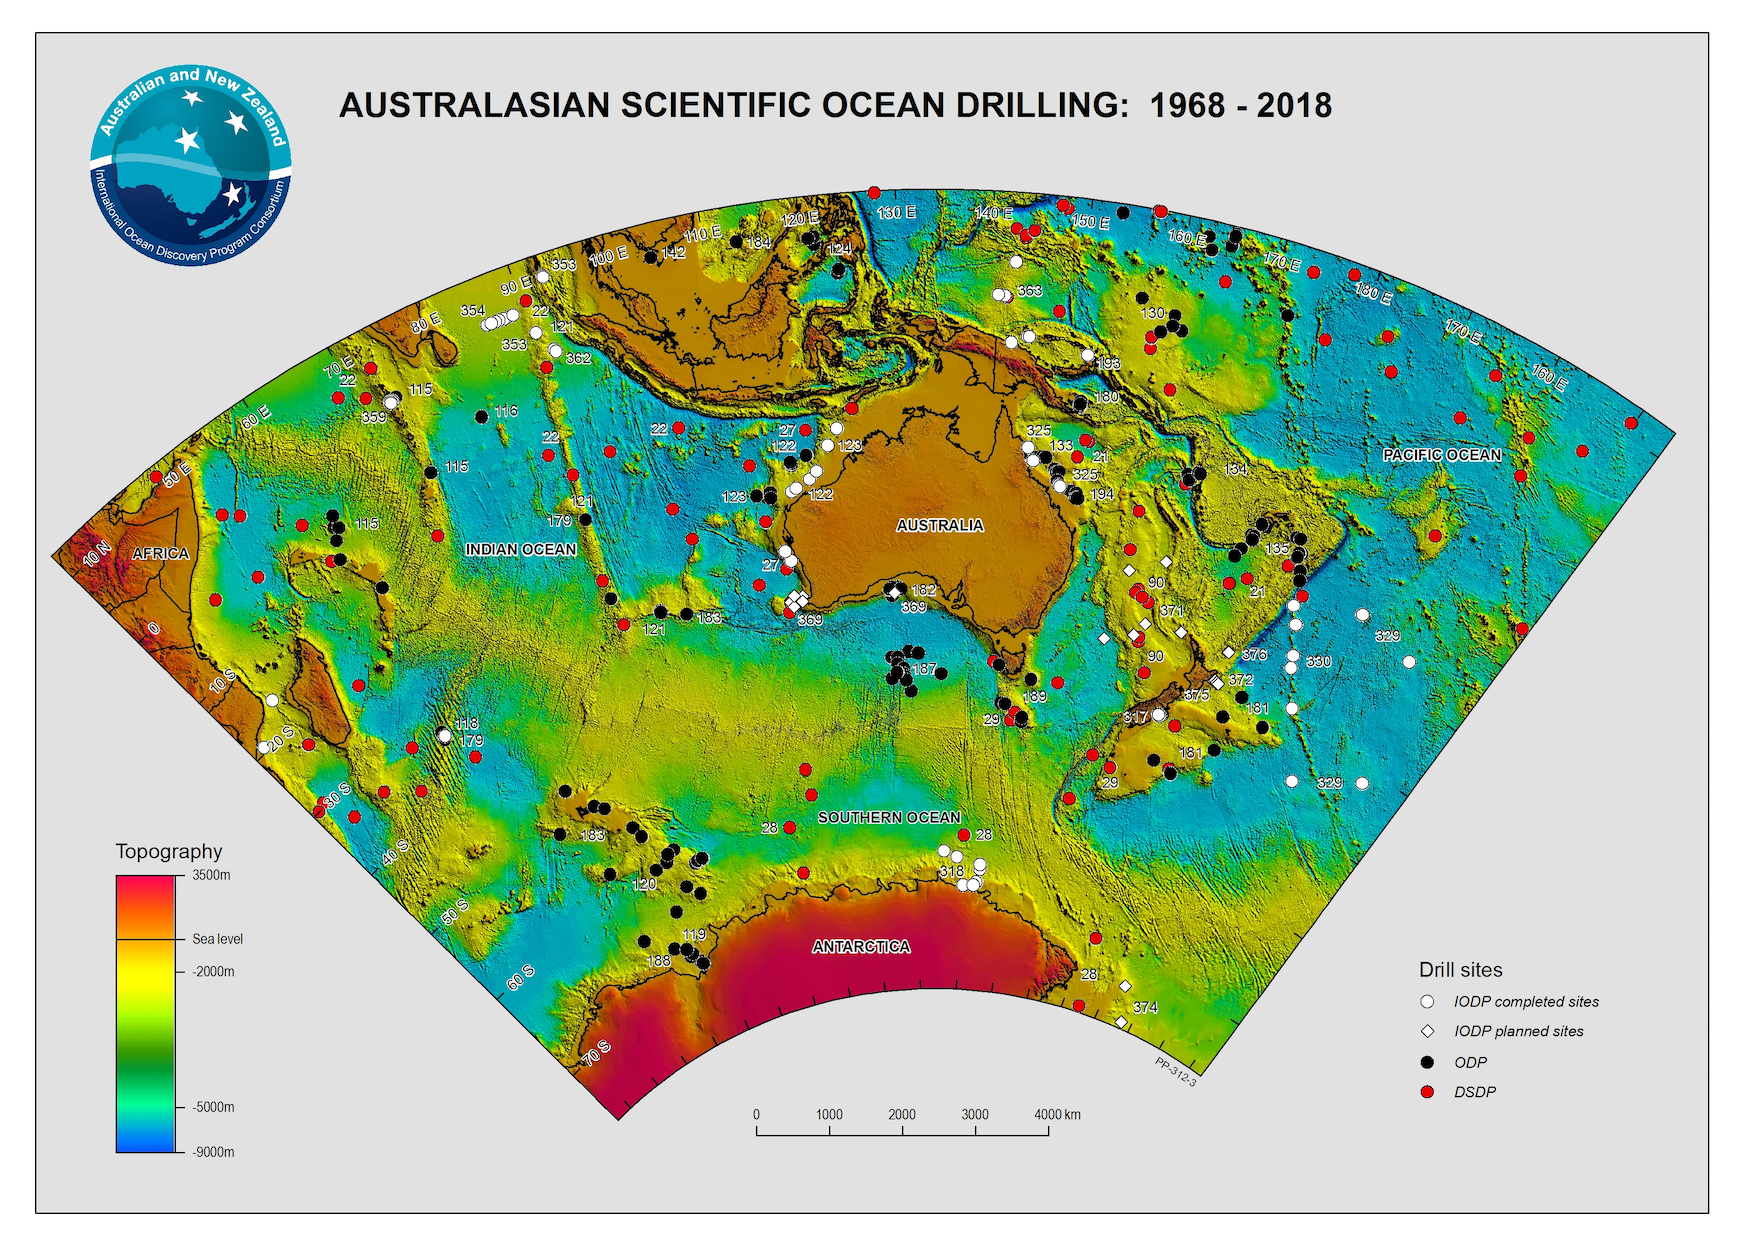 Australian Scientific Ocean Drilling (1968-2018), from Geoscience Australia